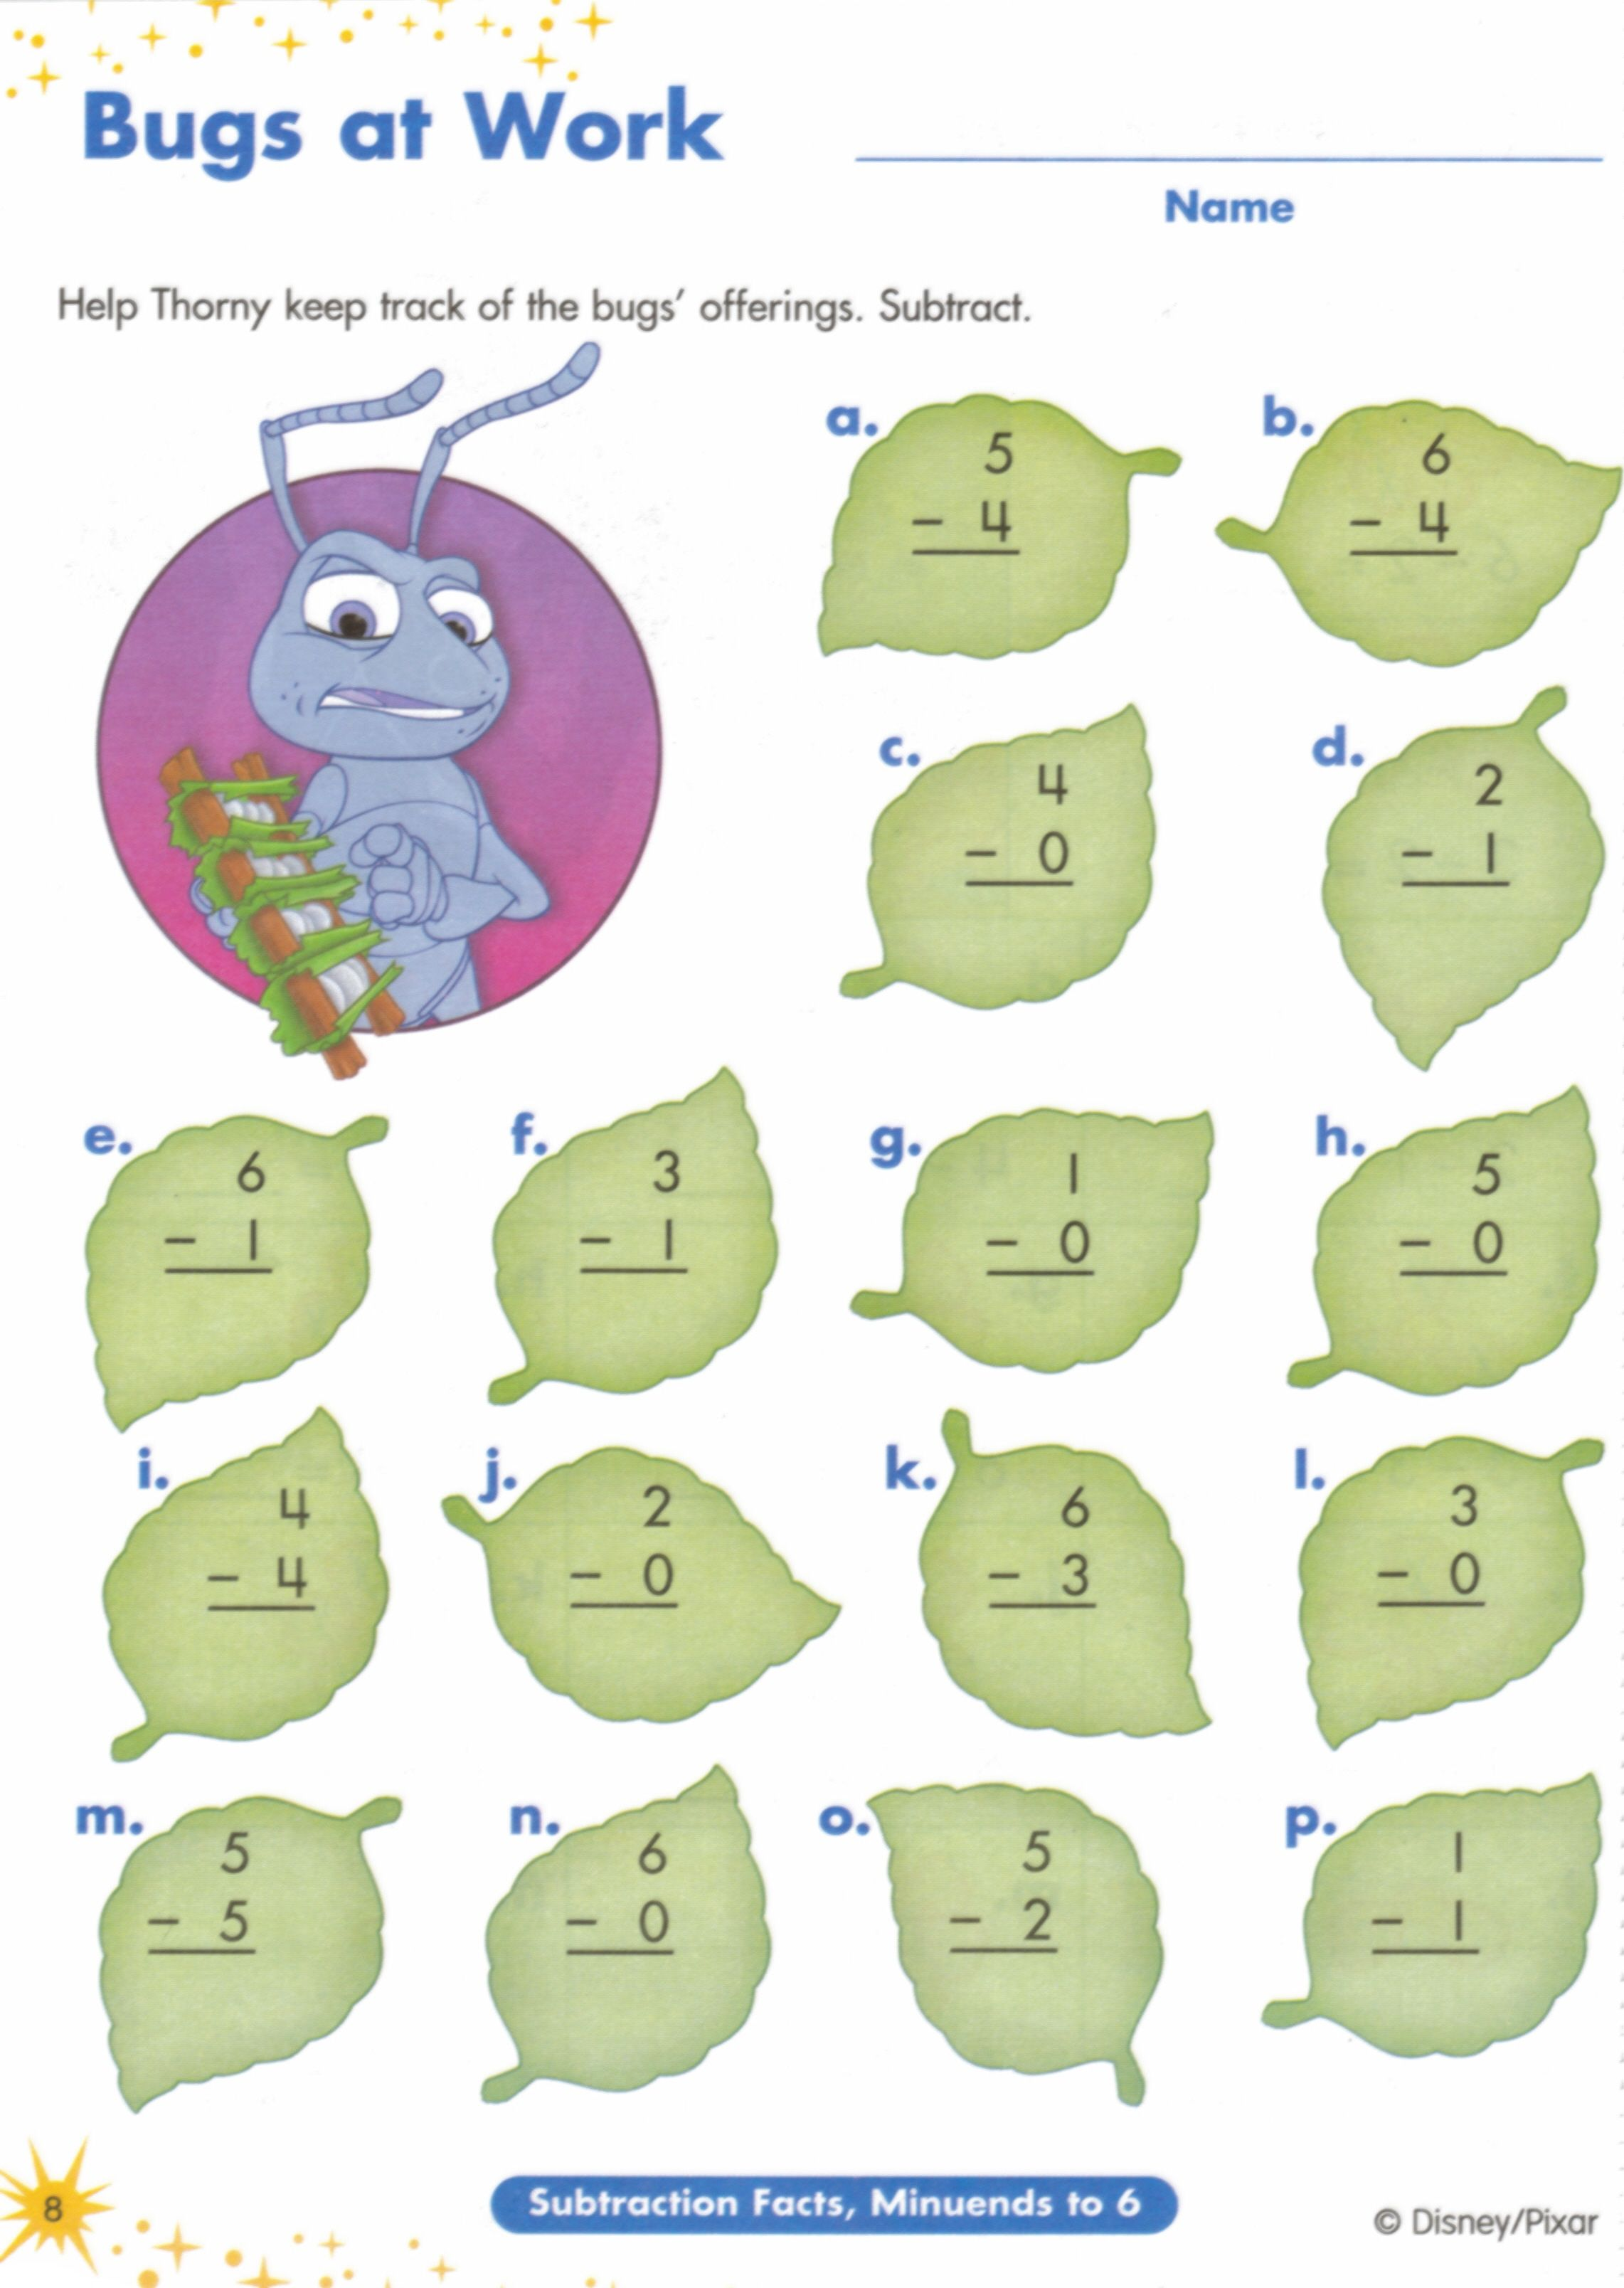 Proatmealus  Personable  Images About Worksheets On Pinterest  Fun Facts For Kids  With Lovable  Images About Worksheets On Pinterest  Fun Facts For Kids Earth Day Worksheets And Jungles With Captivating Subject Verb Concord Worksheets Also Greatest Common Multiple Worksheets In Addition Maths Worksheets To Print And Angles Worksheet Ks As Well As Worksheets For Prefixes Additionally Large Numbers Worksheet From Pinterestcom With Proatmealus  Lovable  Images About Worksheets On Pinterest  Fun Facts For Kids  With Captivating  Images About Worksheets On Pinterest  Fun Facts For Kids Earth Day Worksheets And Jungles And Personable Subject Verb Concord Worksheets Also Greatest Common Multiple Worksheets In Addition Maths Worksheets To Print From Pinterestcom